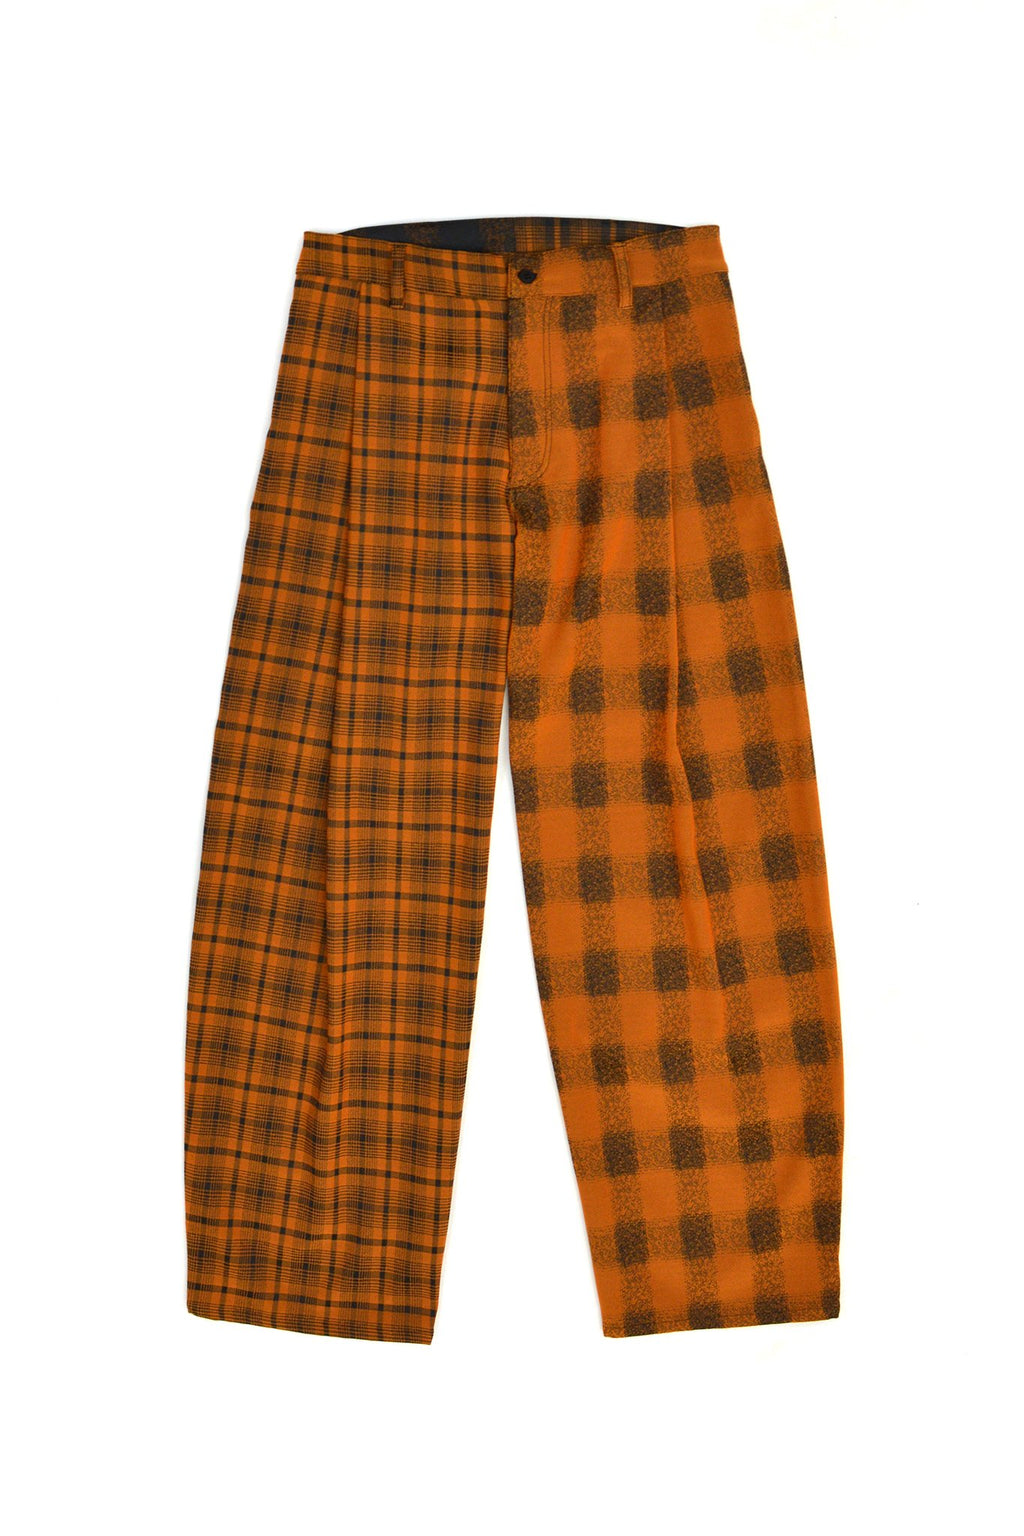 Gauntlett Cheng Double Plaid Trousers